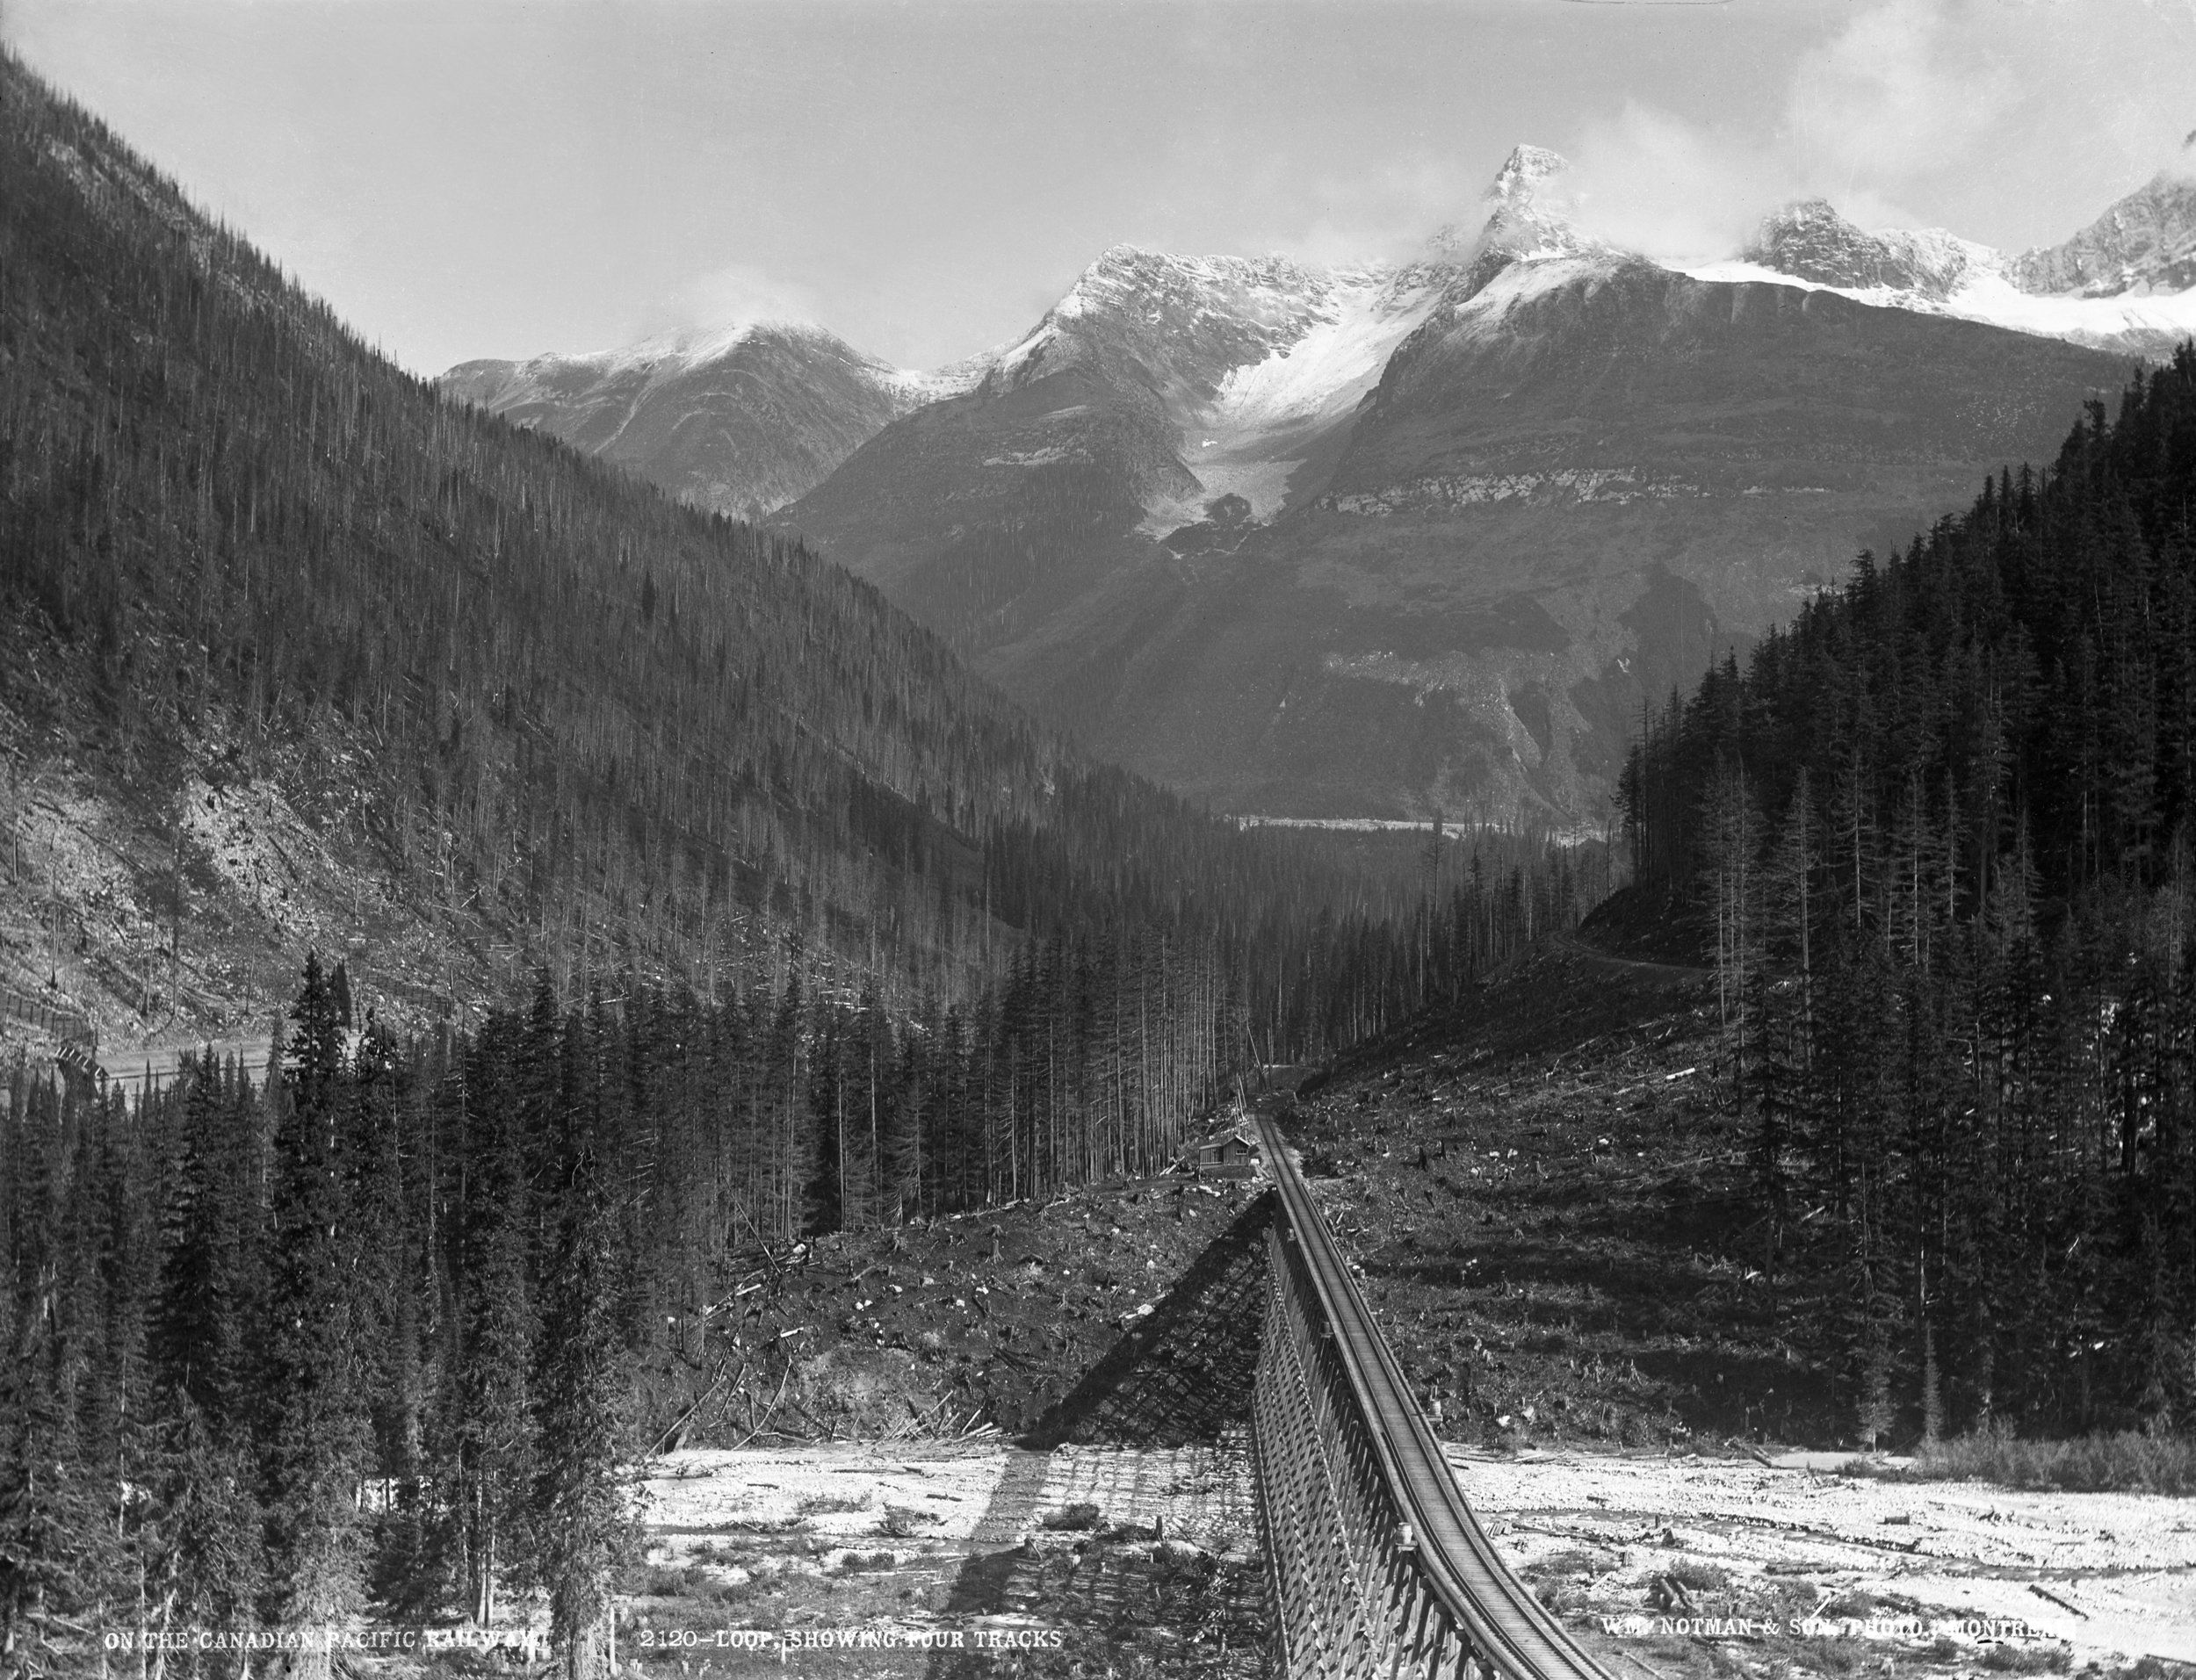 Image 4:  Loop showing four tracks on the Canadian Pacific Railway, B.C. , reversed glass plate negative, 1889 (Wm Notman & Son/William McFarlane Notman) © McCord Museum